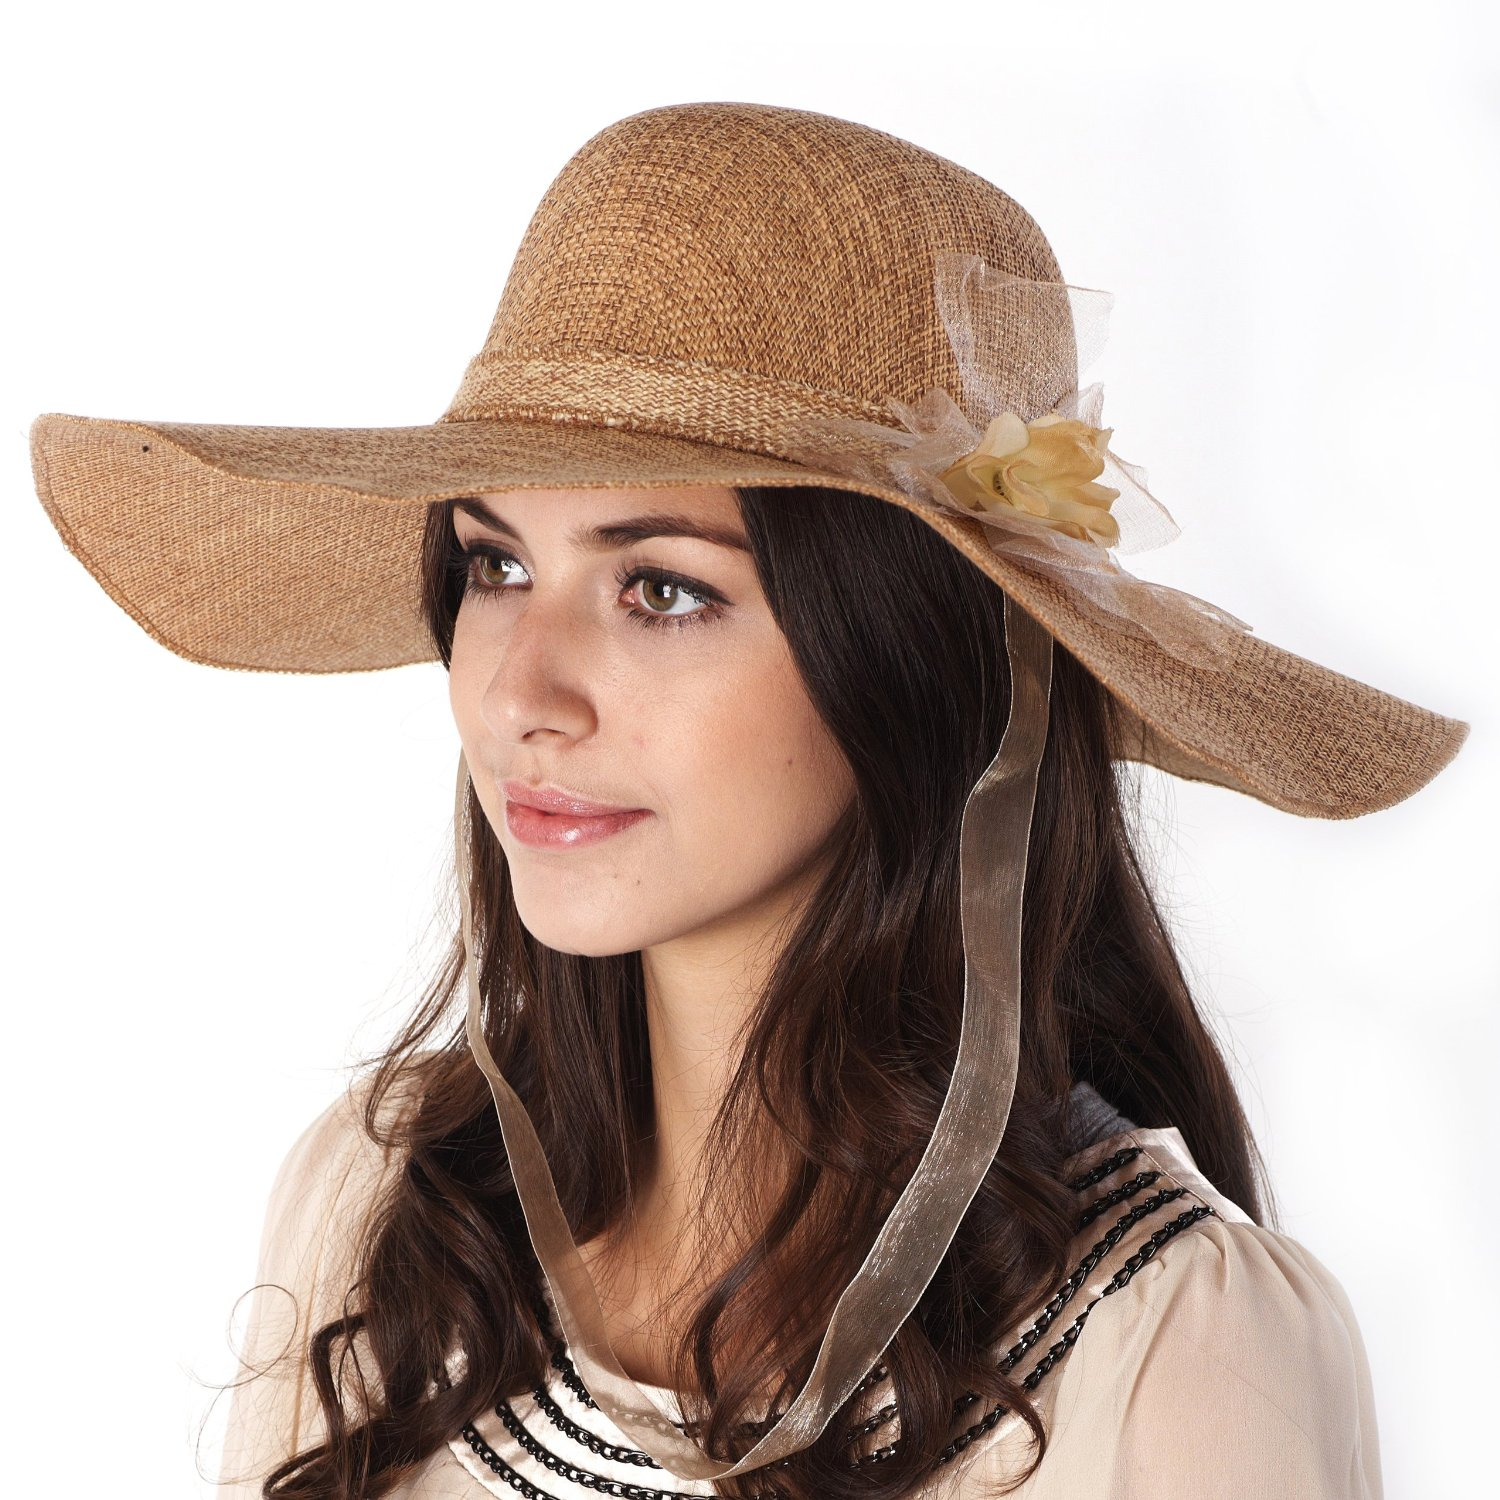 Our collection of hats includes many options for cancer patients and women with hair loss. From soft cotton cancer hats and newsboy caps to dressy cloche and fedora hats, there is something for everyone.